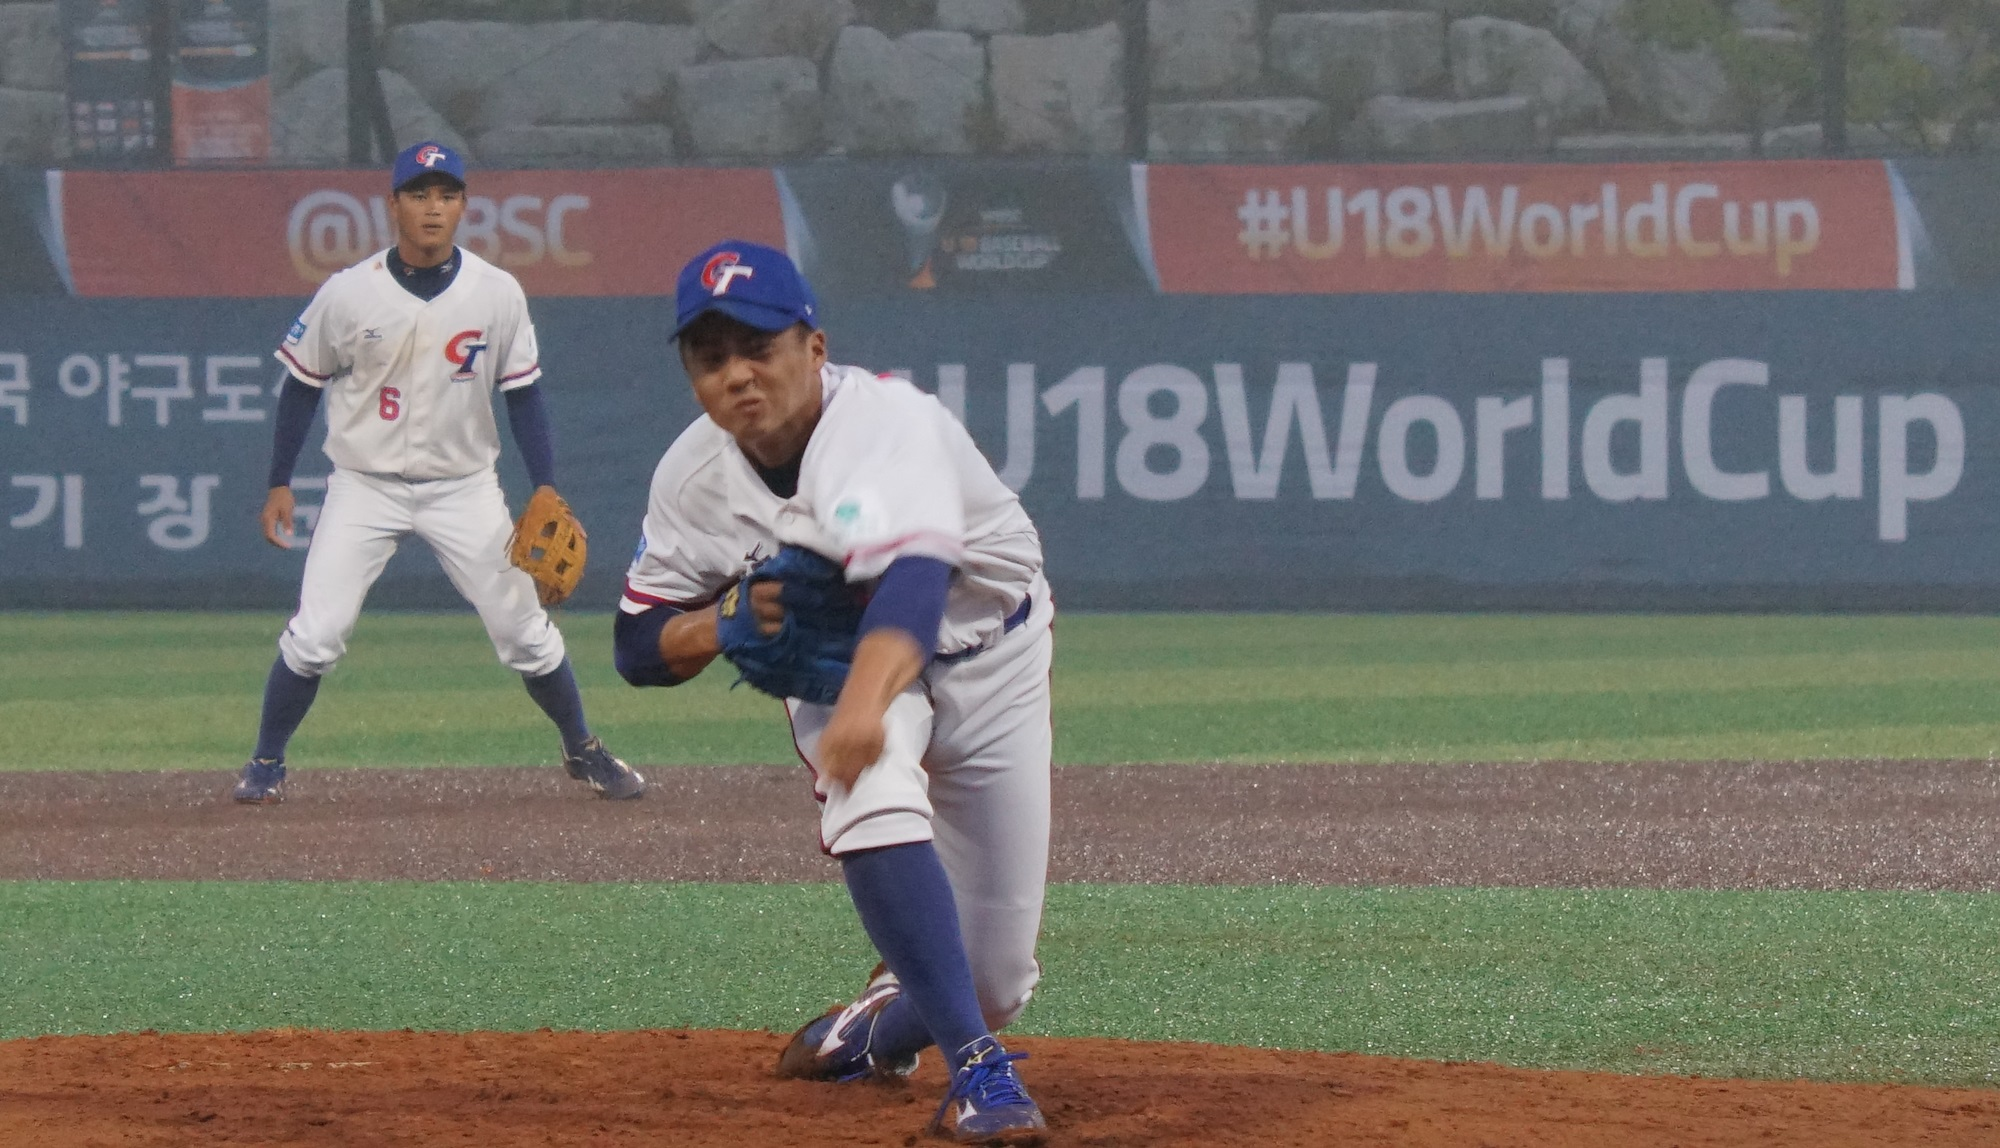 Wang Ya Cheng won't allow Japan another run